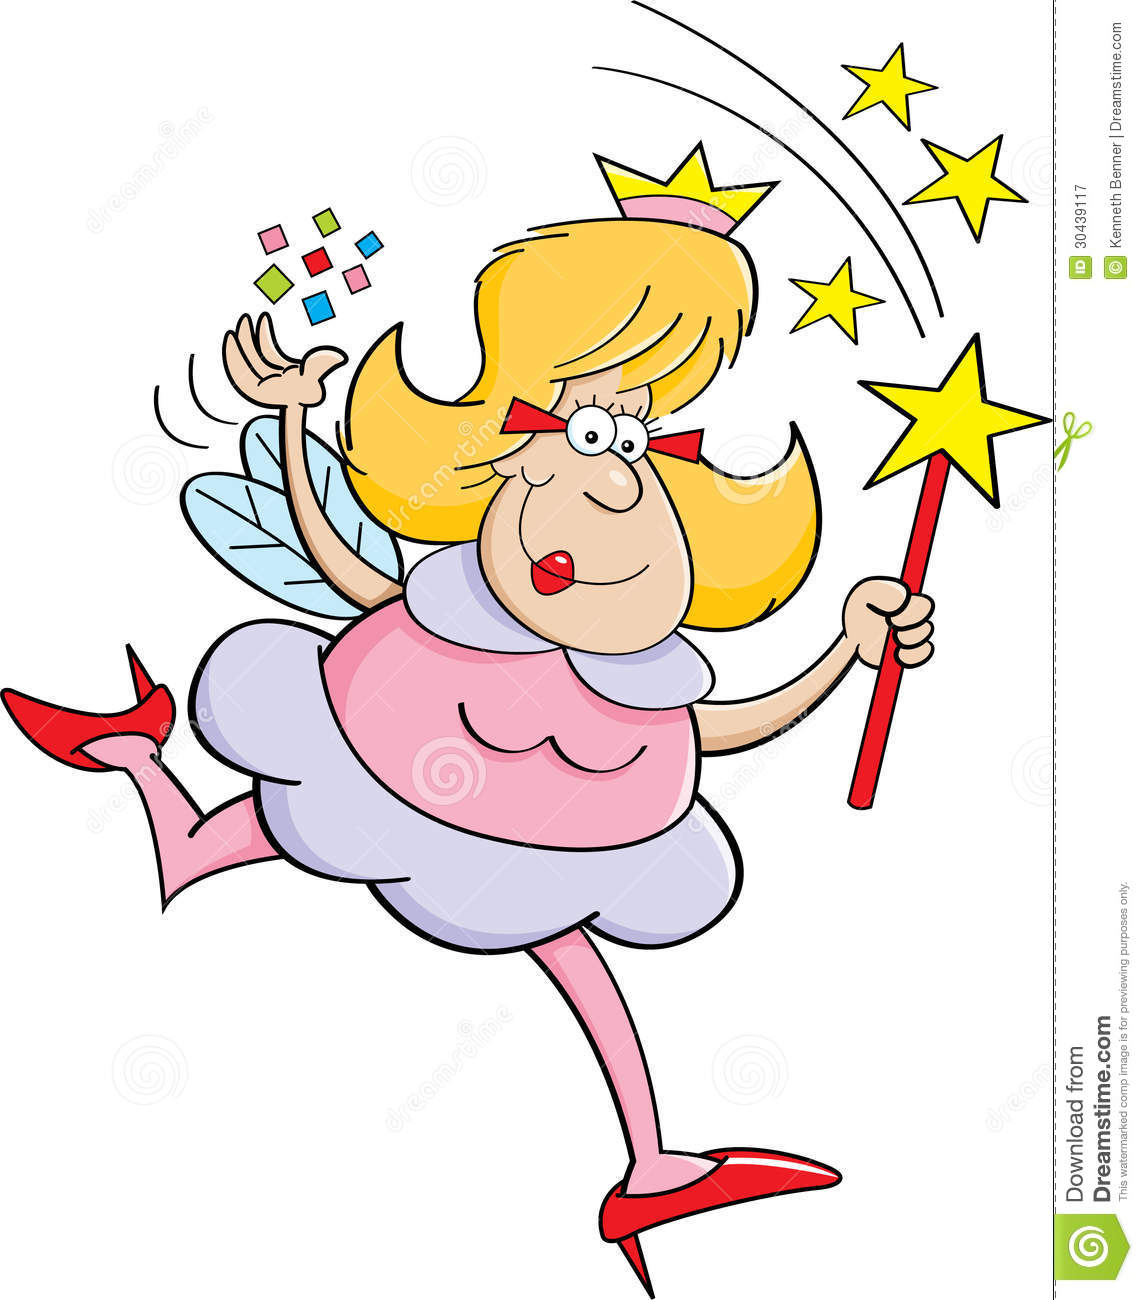 Displaying 20> Images For - Fairy Godmother Magic Wand Clip Art...